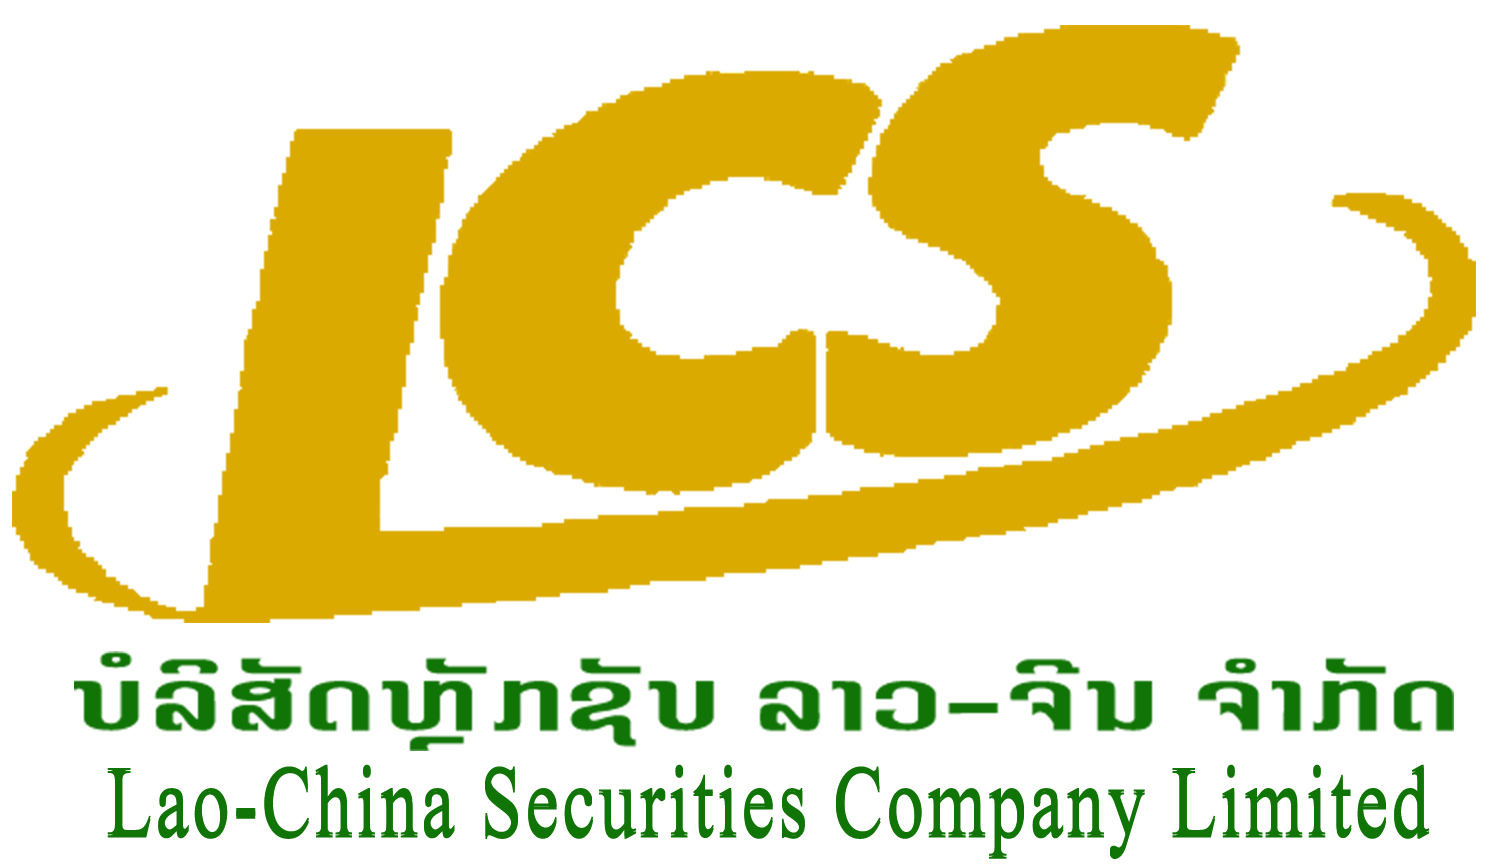 Lao-China Securities Company Limited